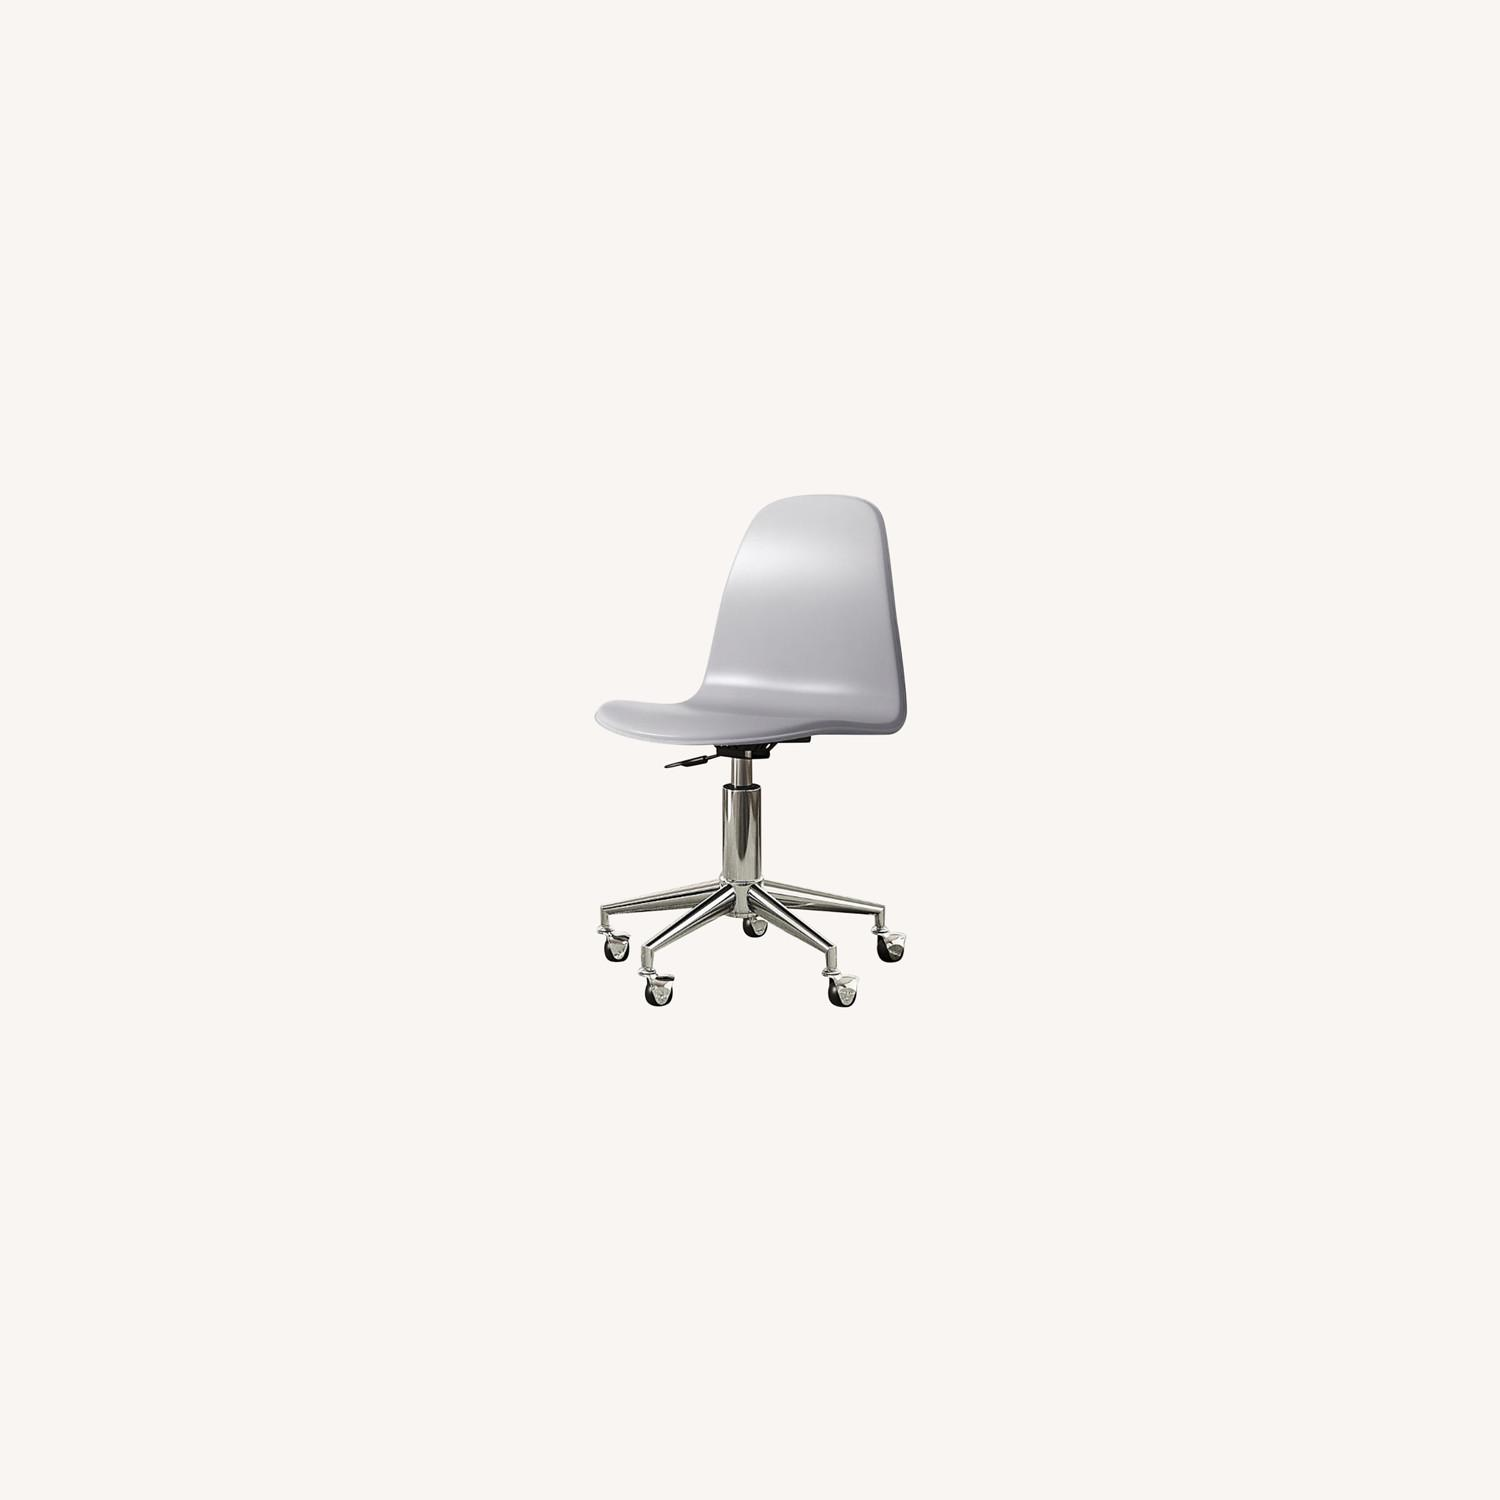 Crate & Barrel Class Act Light Grey & Silver Desk Chair - image-0